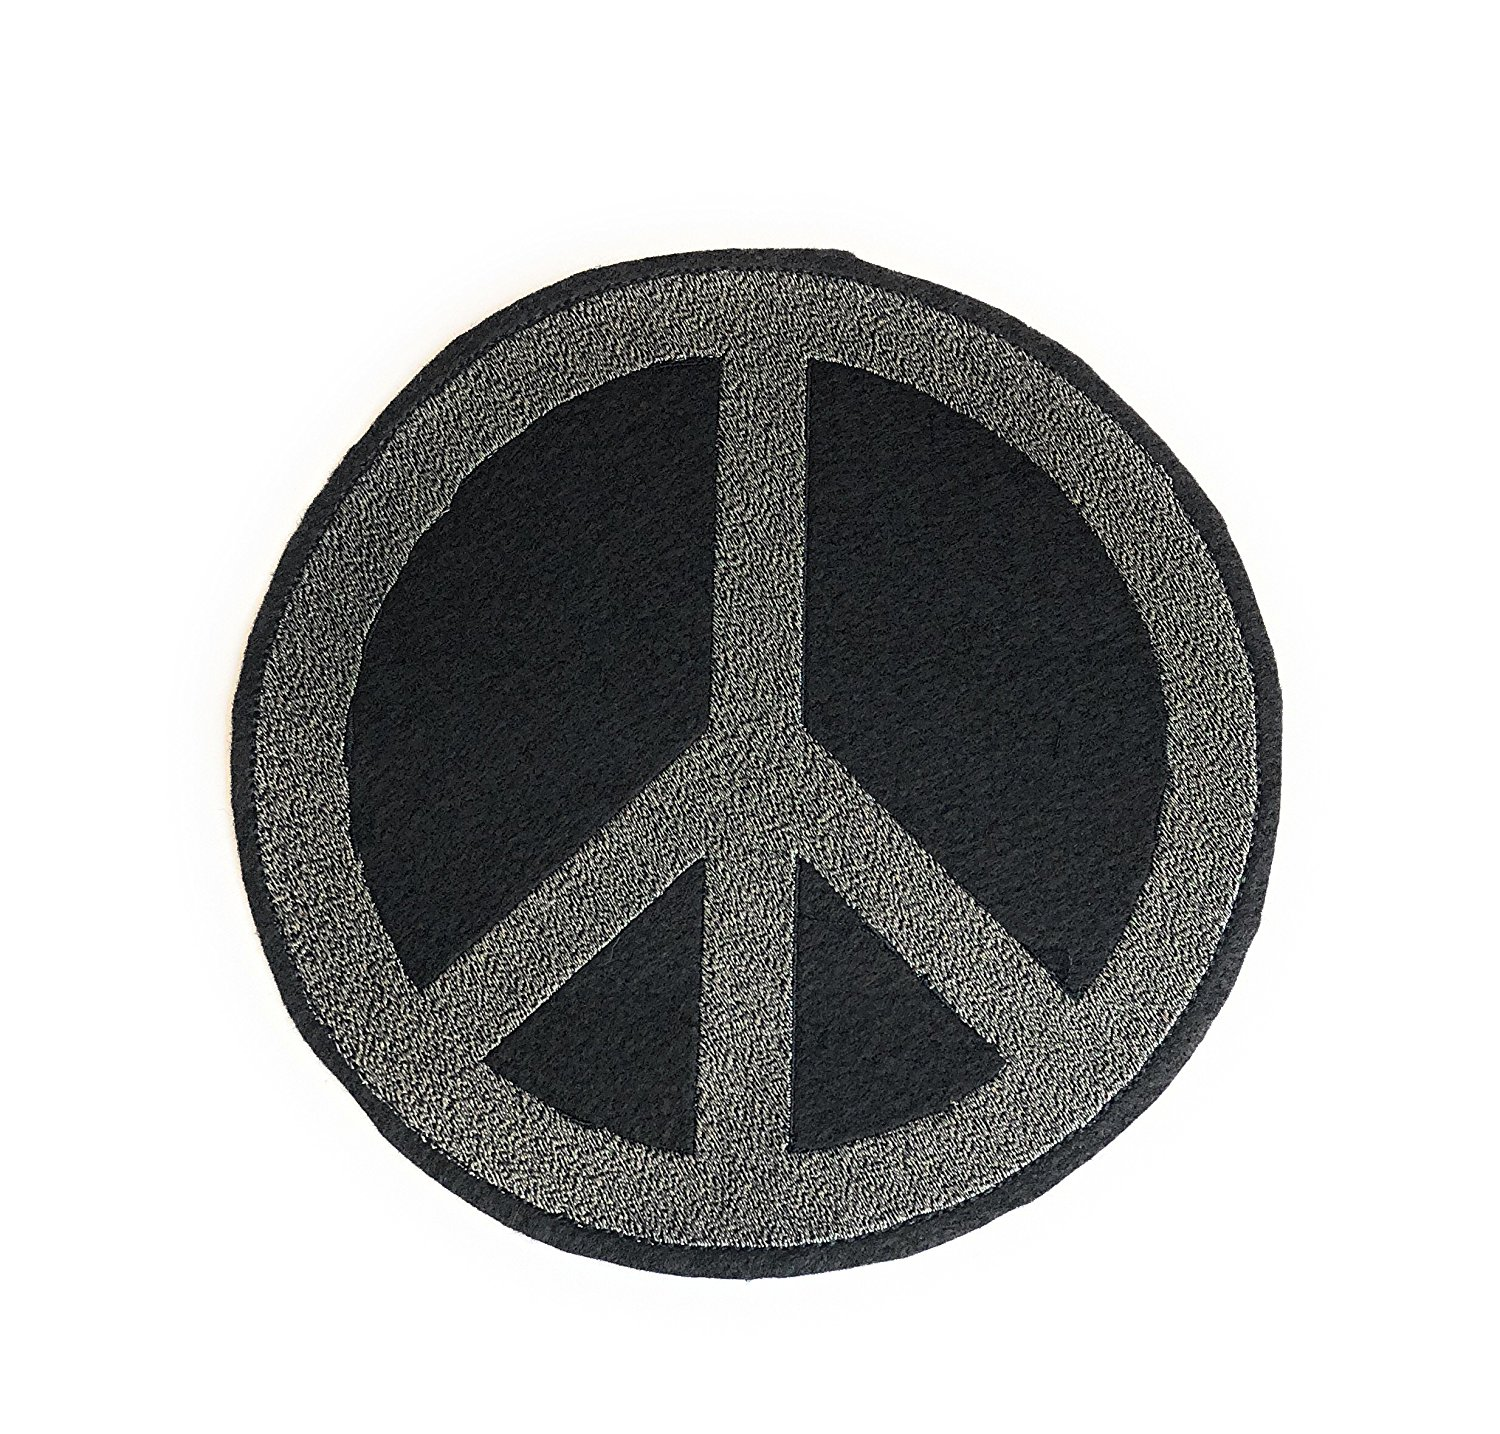 Large Peace Sign Patch, Peace Symbol Patch, Peace Sign Sew on Patch, Large Patch 7.5 inches in Gray, Made in USA